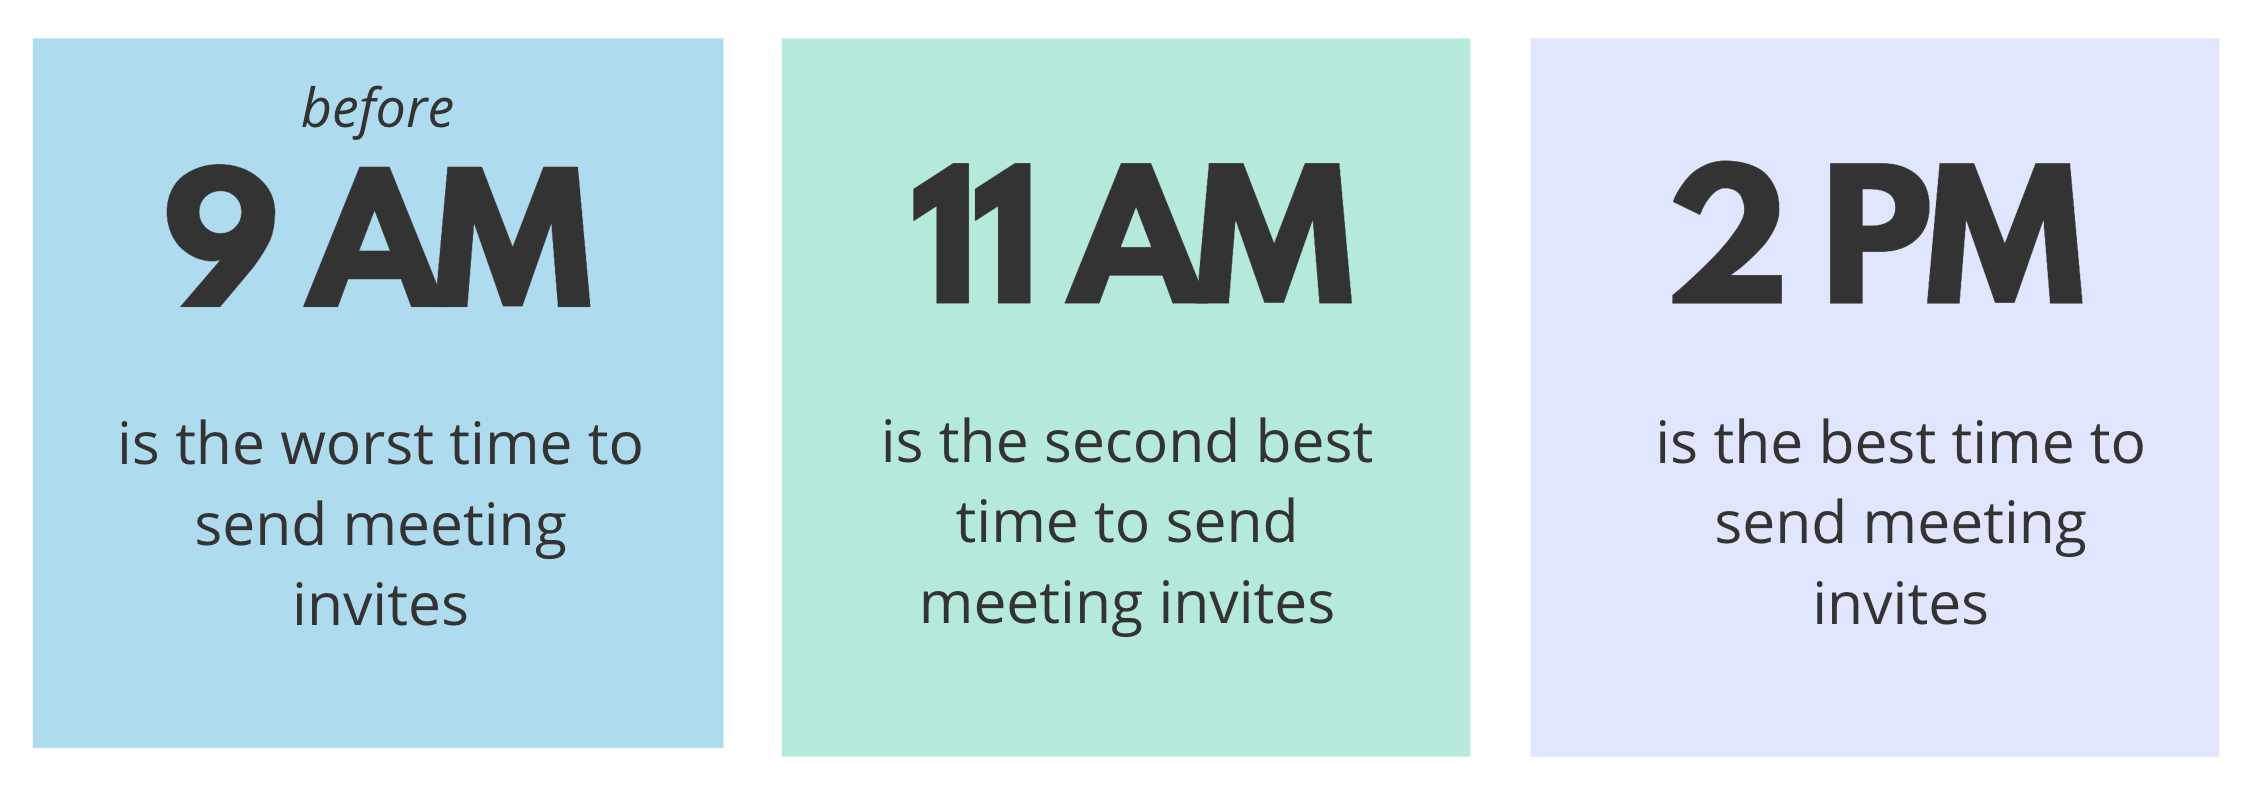 best time to send your meeting invites